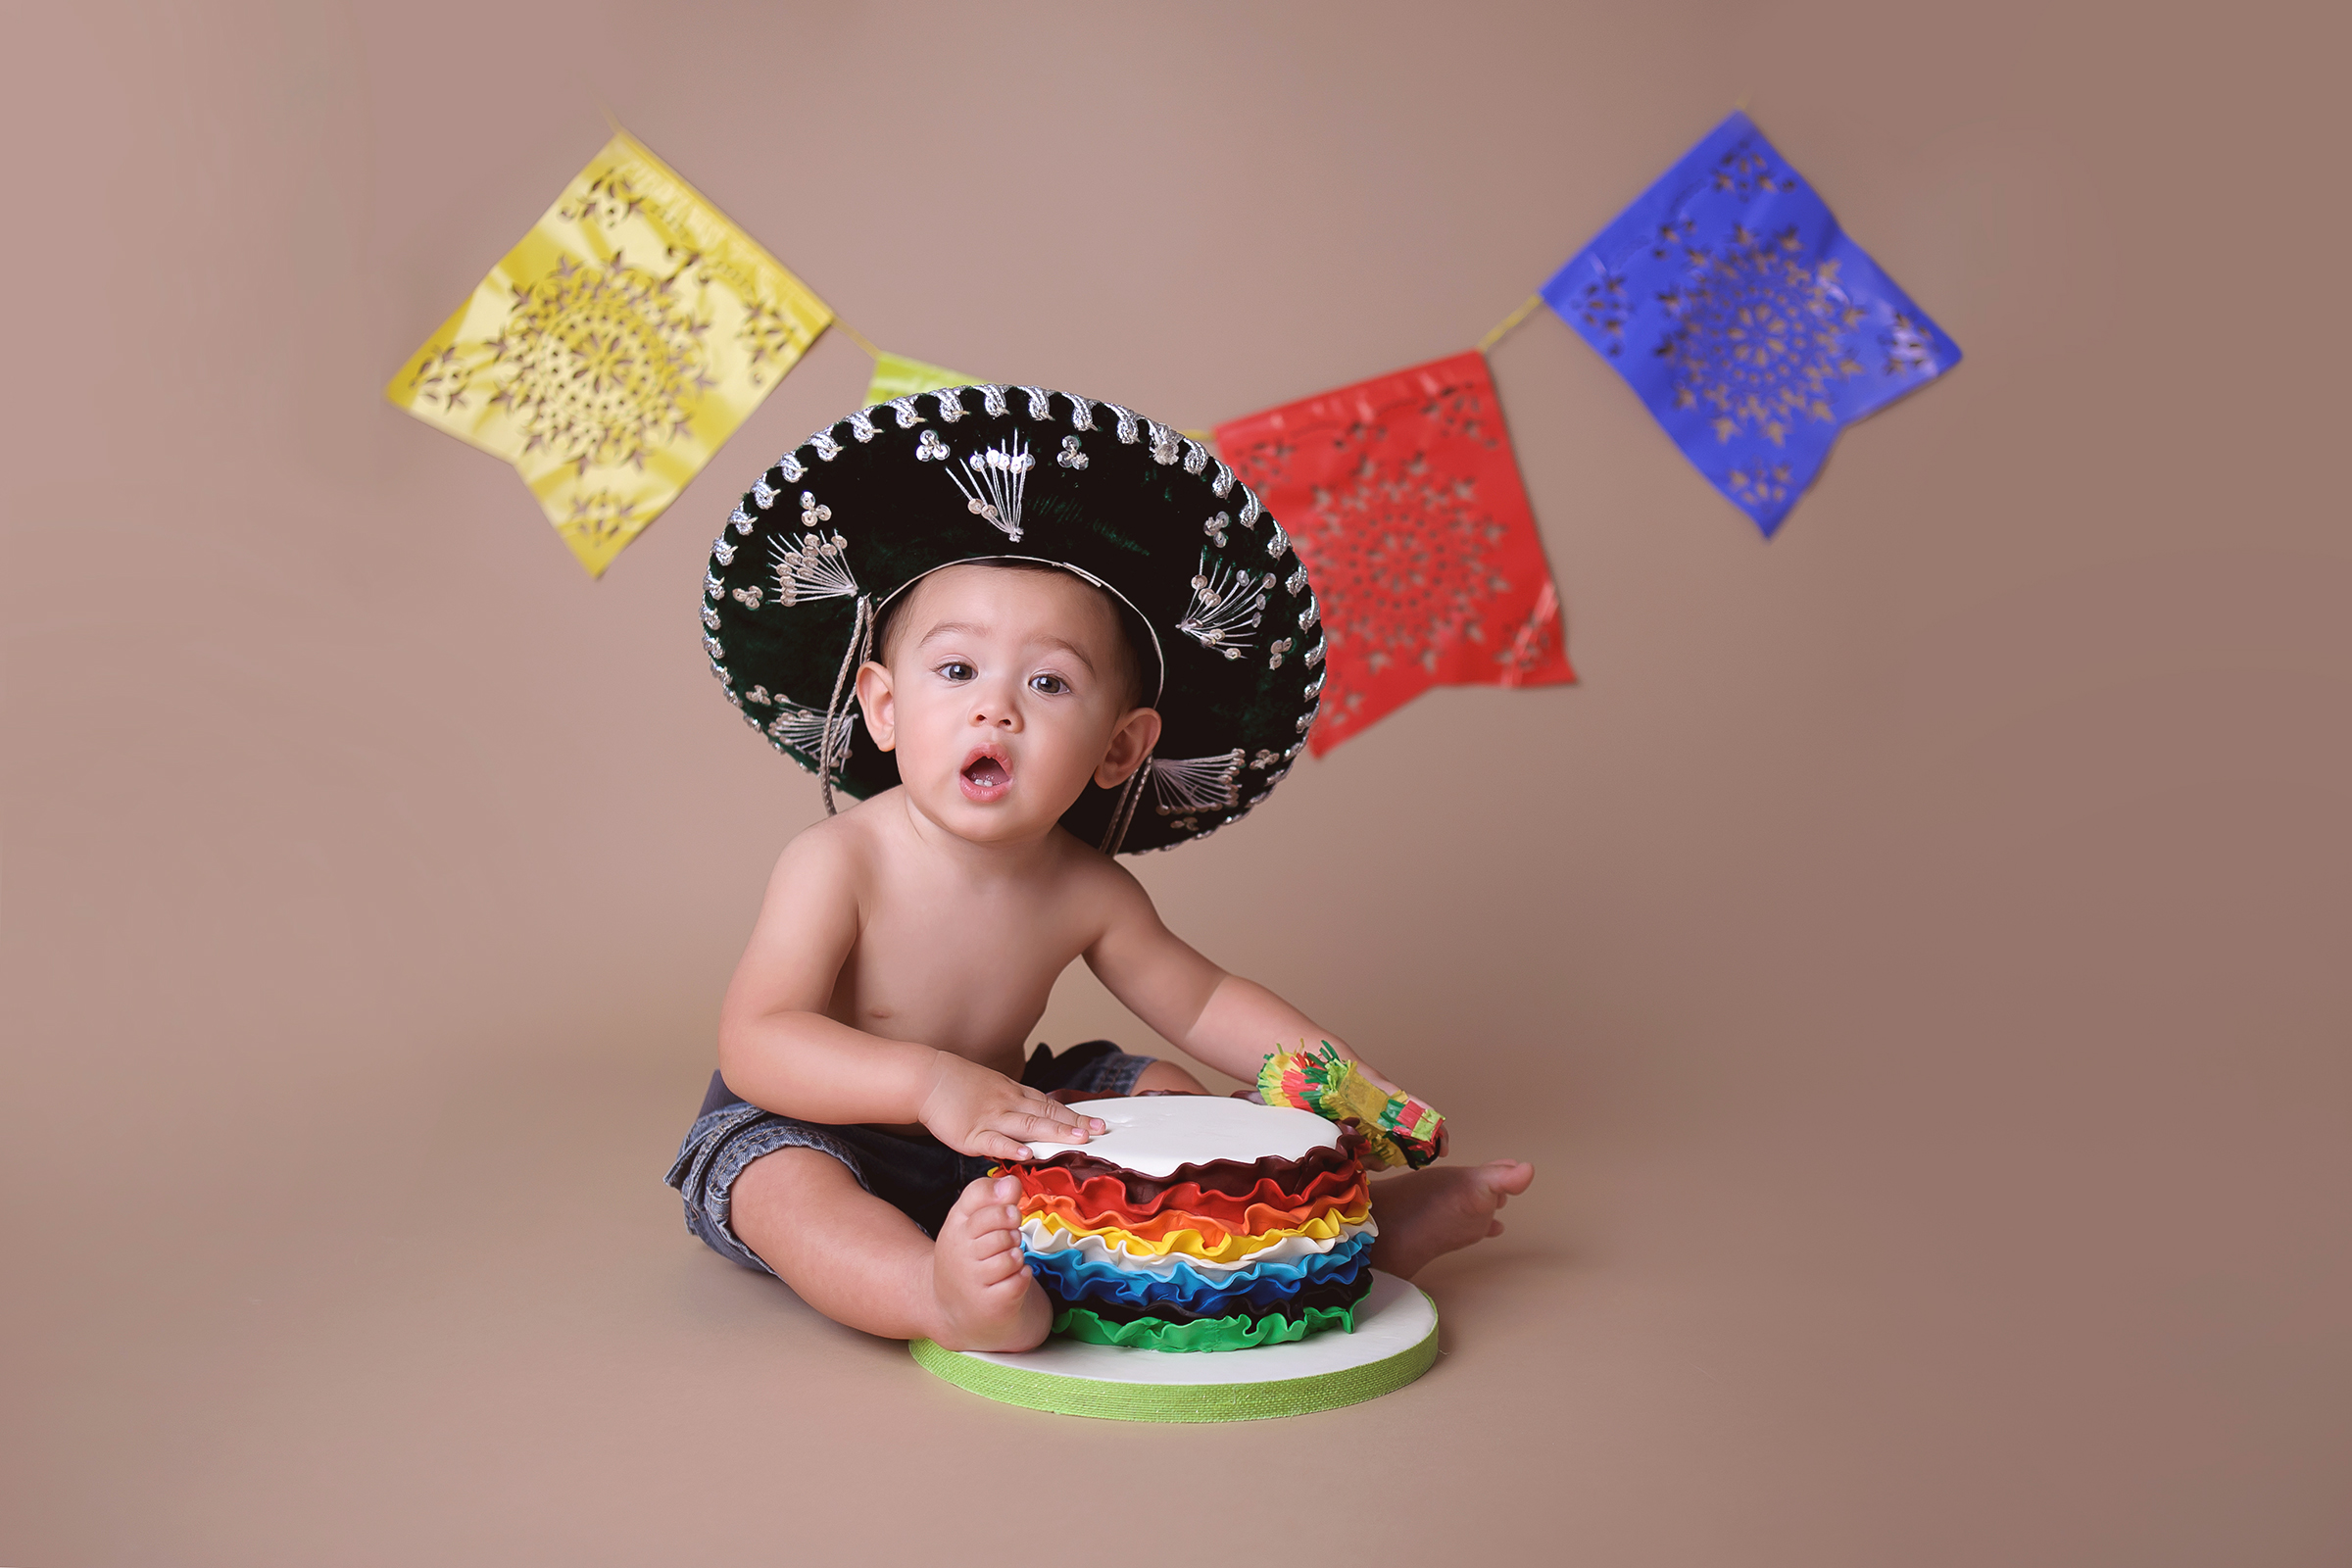 Mexican Theme Cake Smash Photo With Sombrero And Pinata Cake Topper San  Diego Sc 1 St Sophie Crew Photography 1ec2acbe615